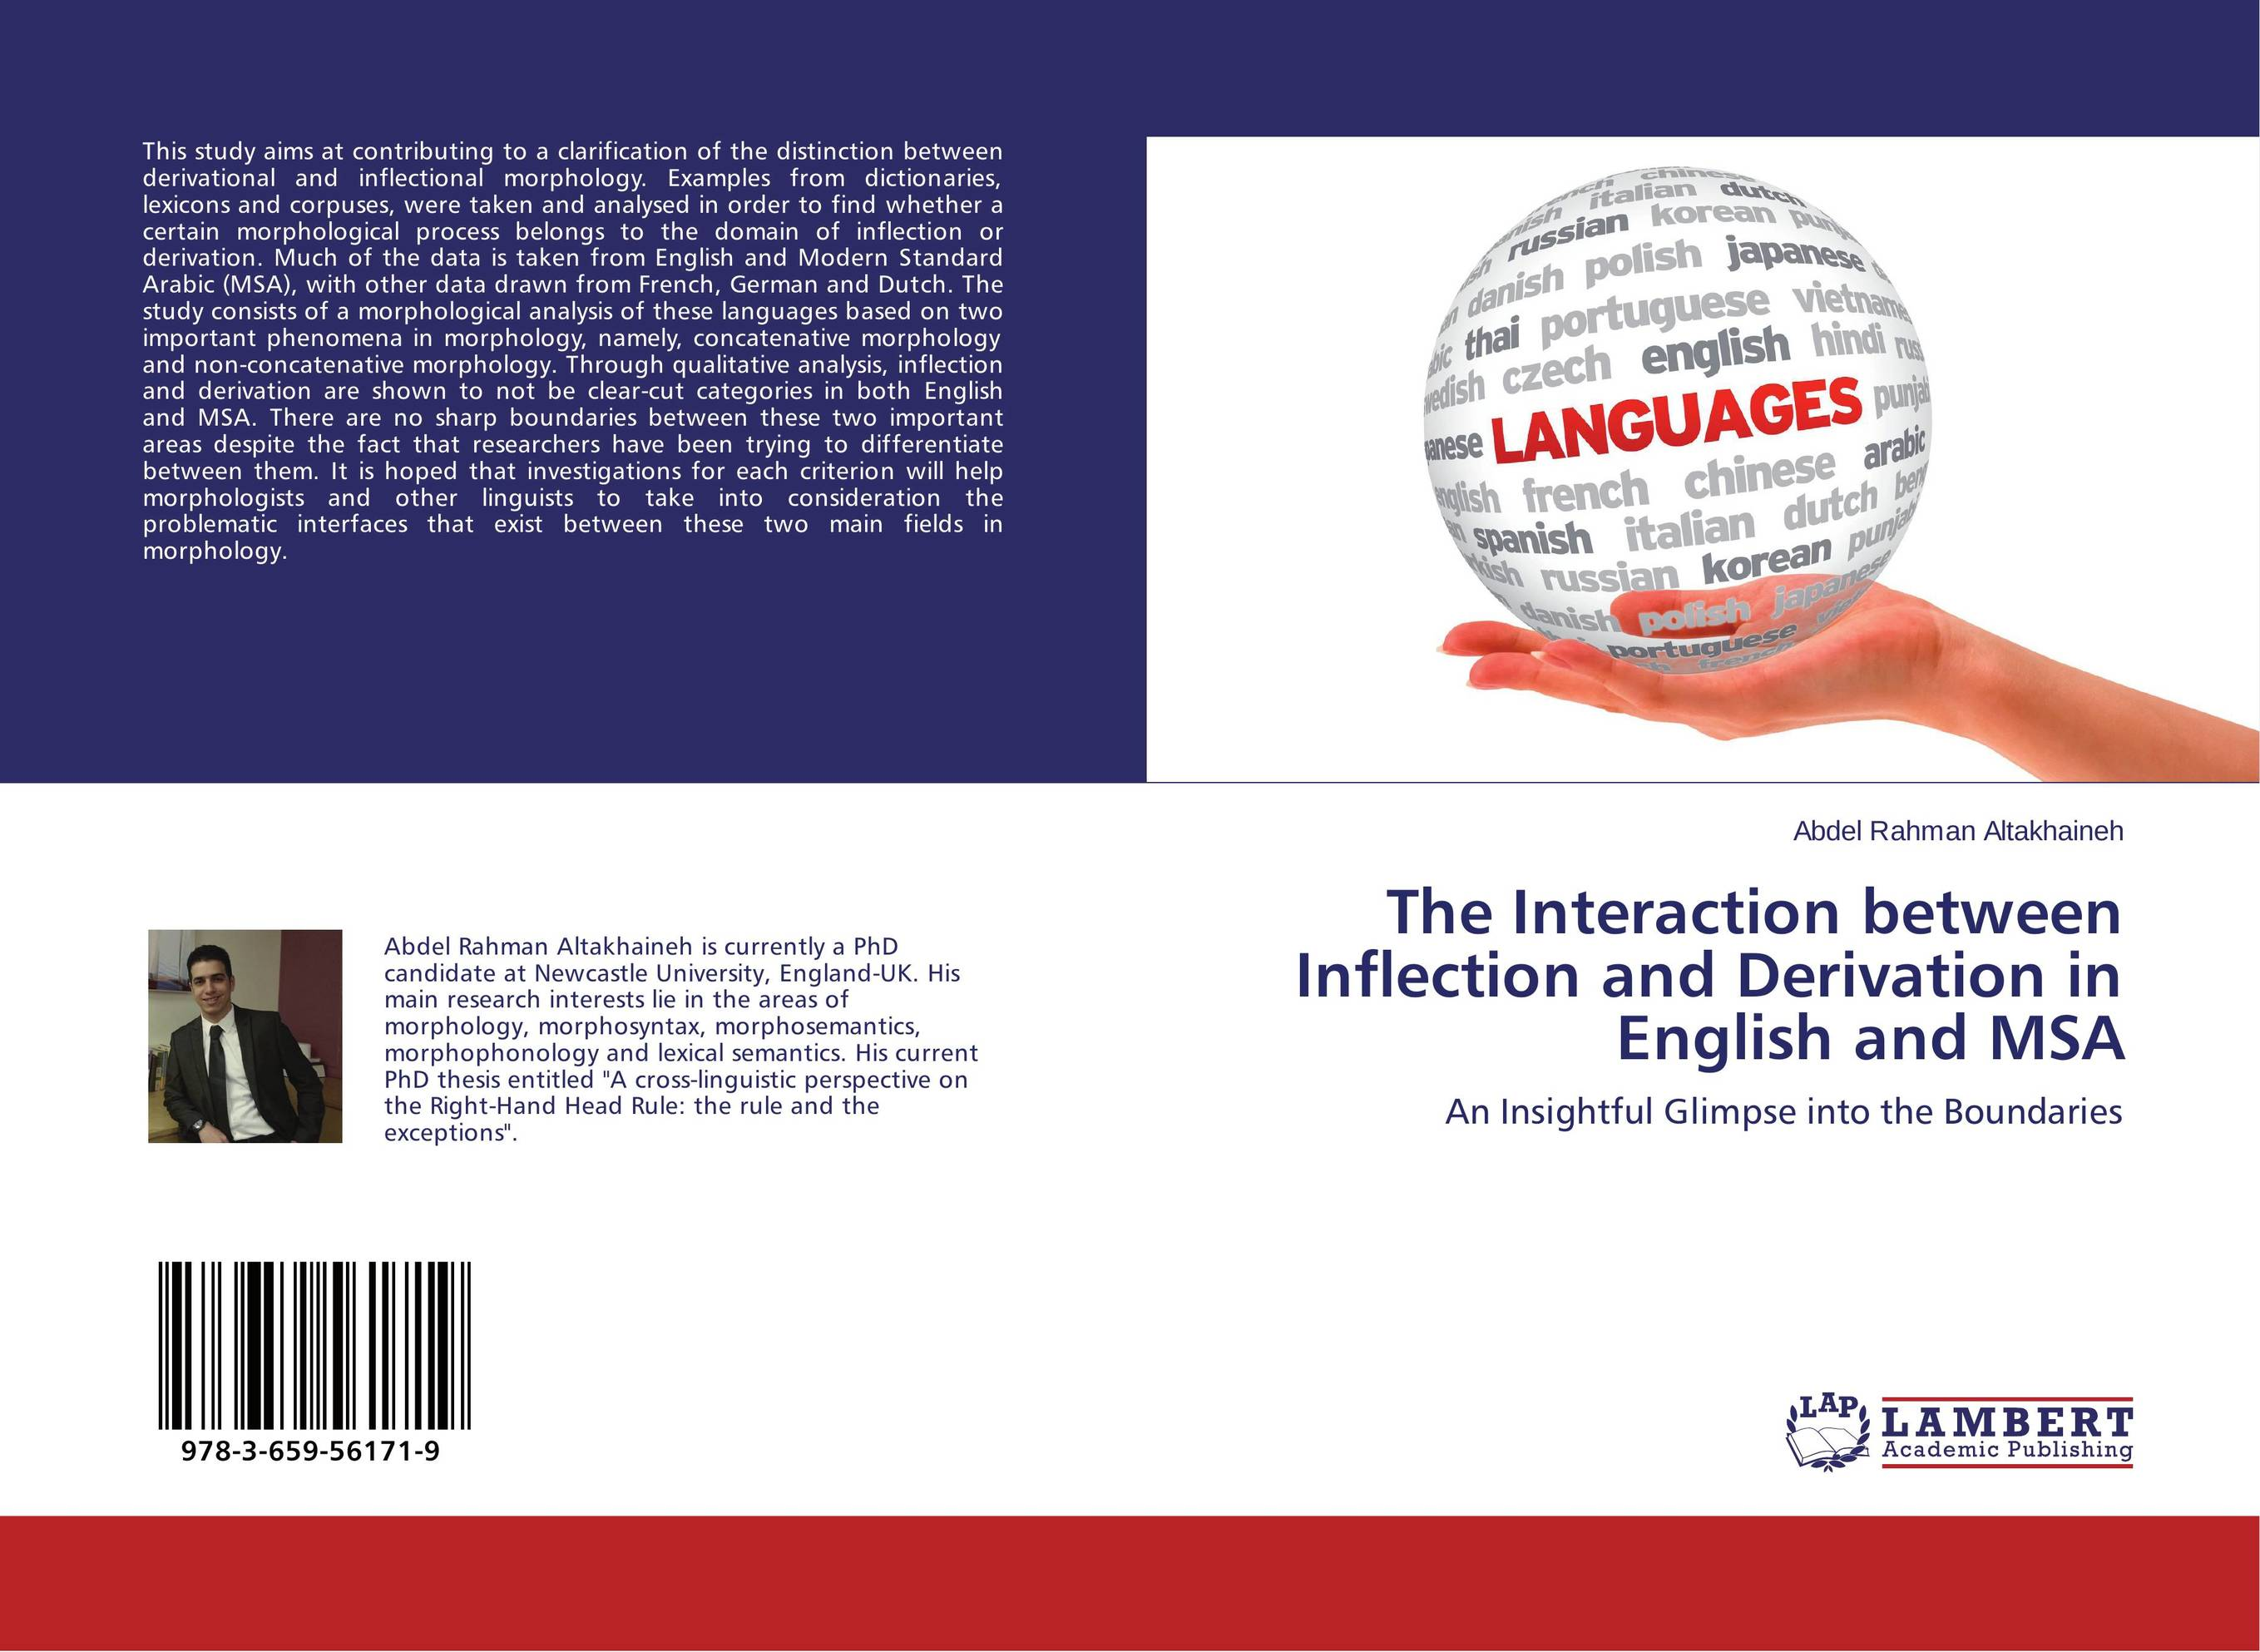 inflection paper linguistics How to write a linguistics essay language is important and impacts as well as interacts with the world on a daily basis different sections and issues of language make for interesting essay topics , for example, how language forms, the meaning of language, and language content.